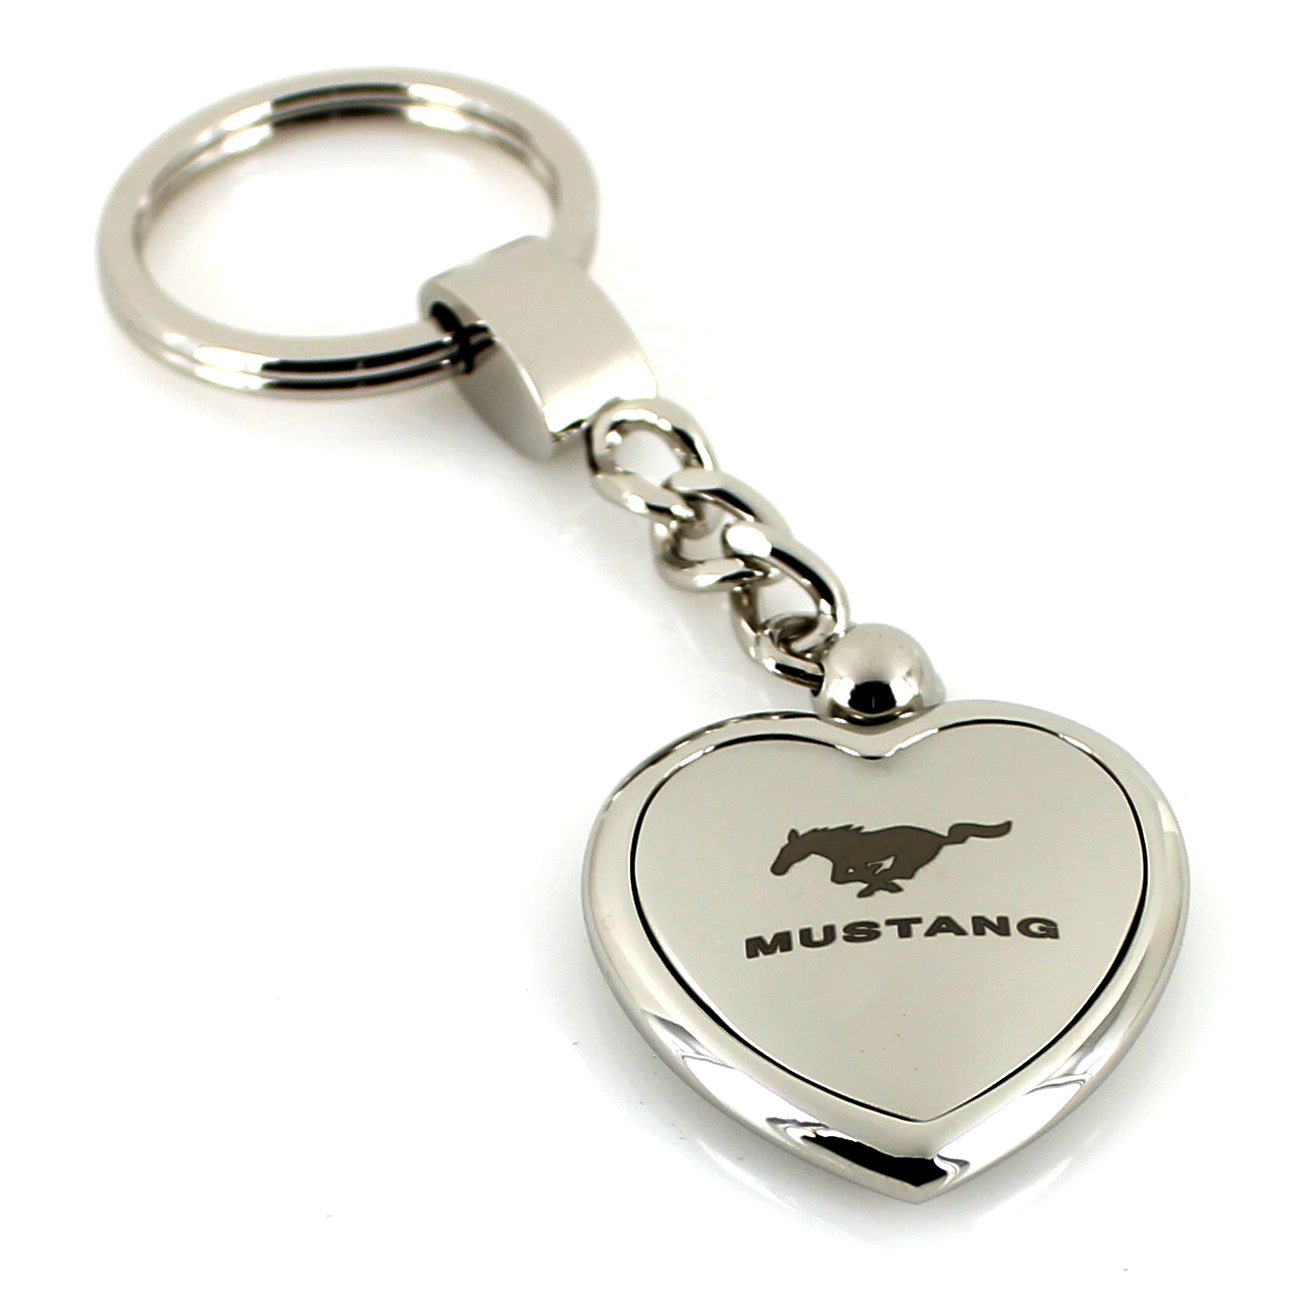 Ford Mustang Heart Shape Chain Keychain (Chrome) - Custom Werks